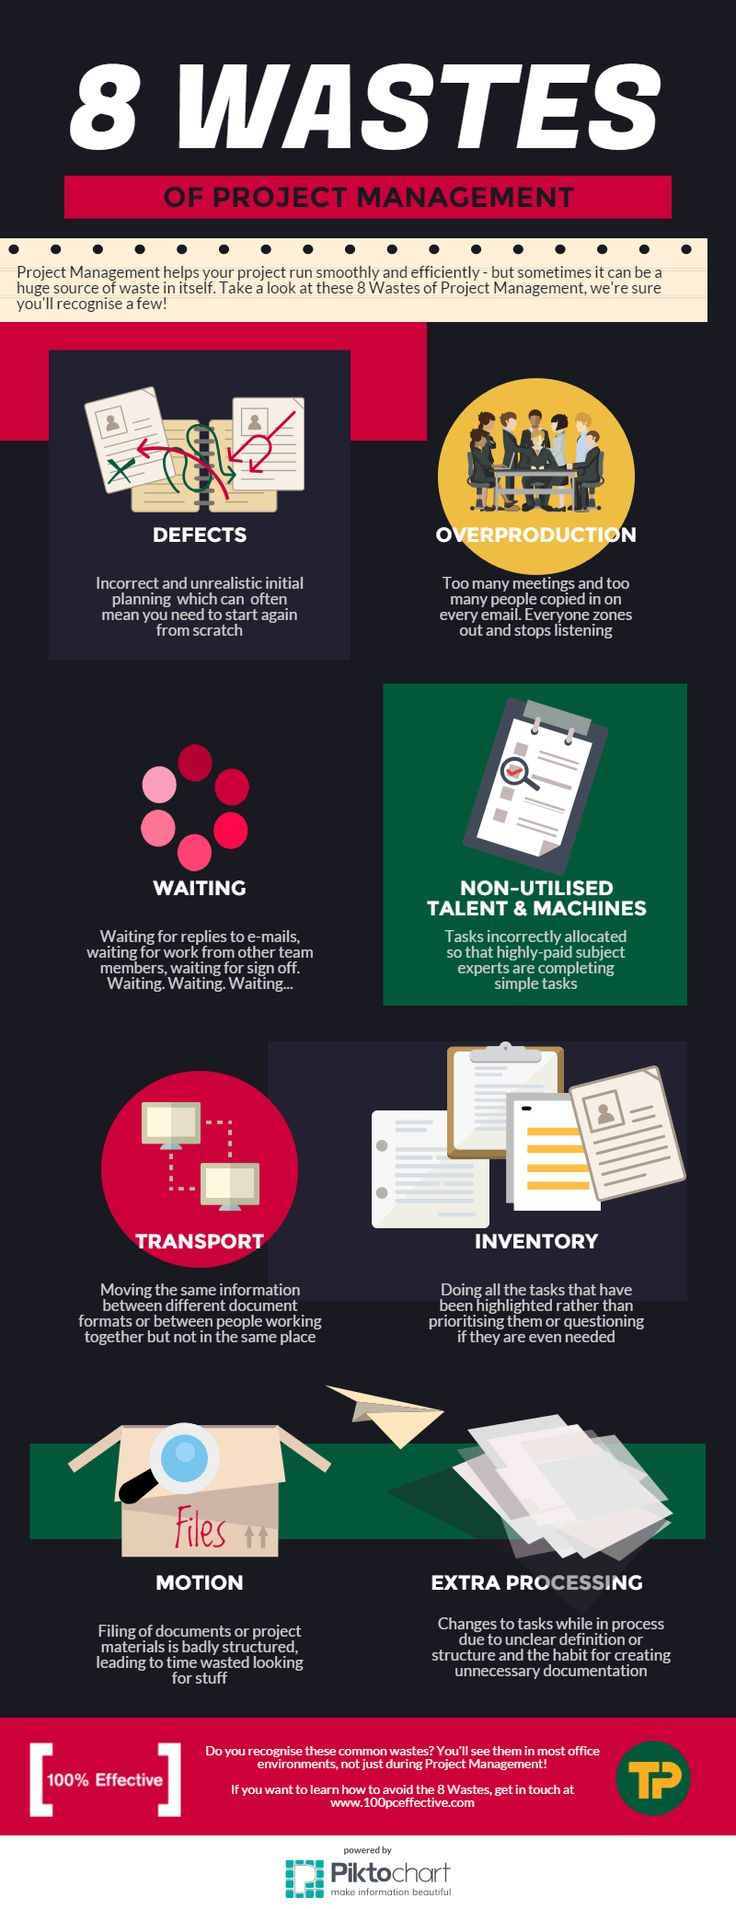 Take a look at the 8 wastes of project management #Lean #Wastes…